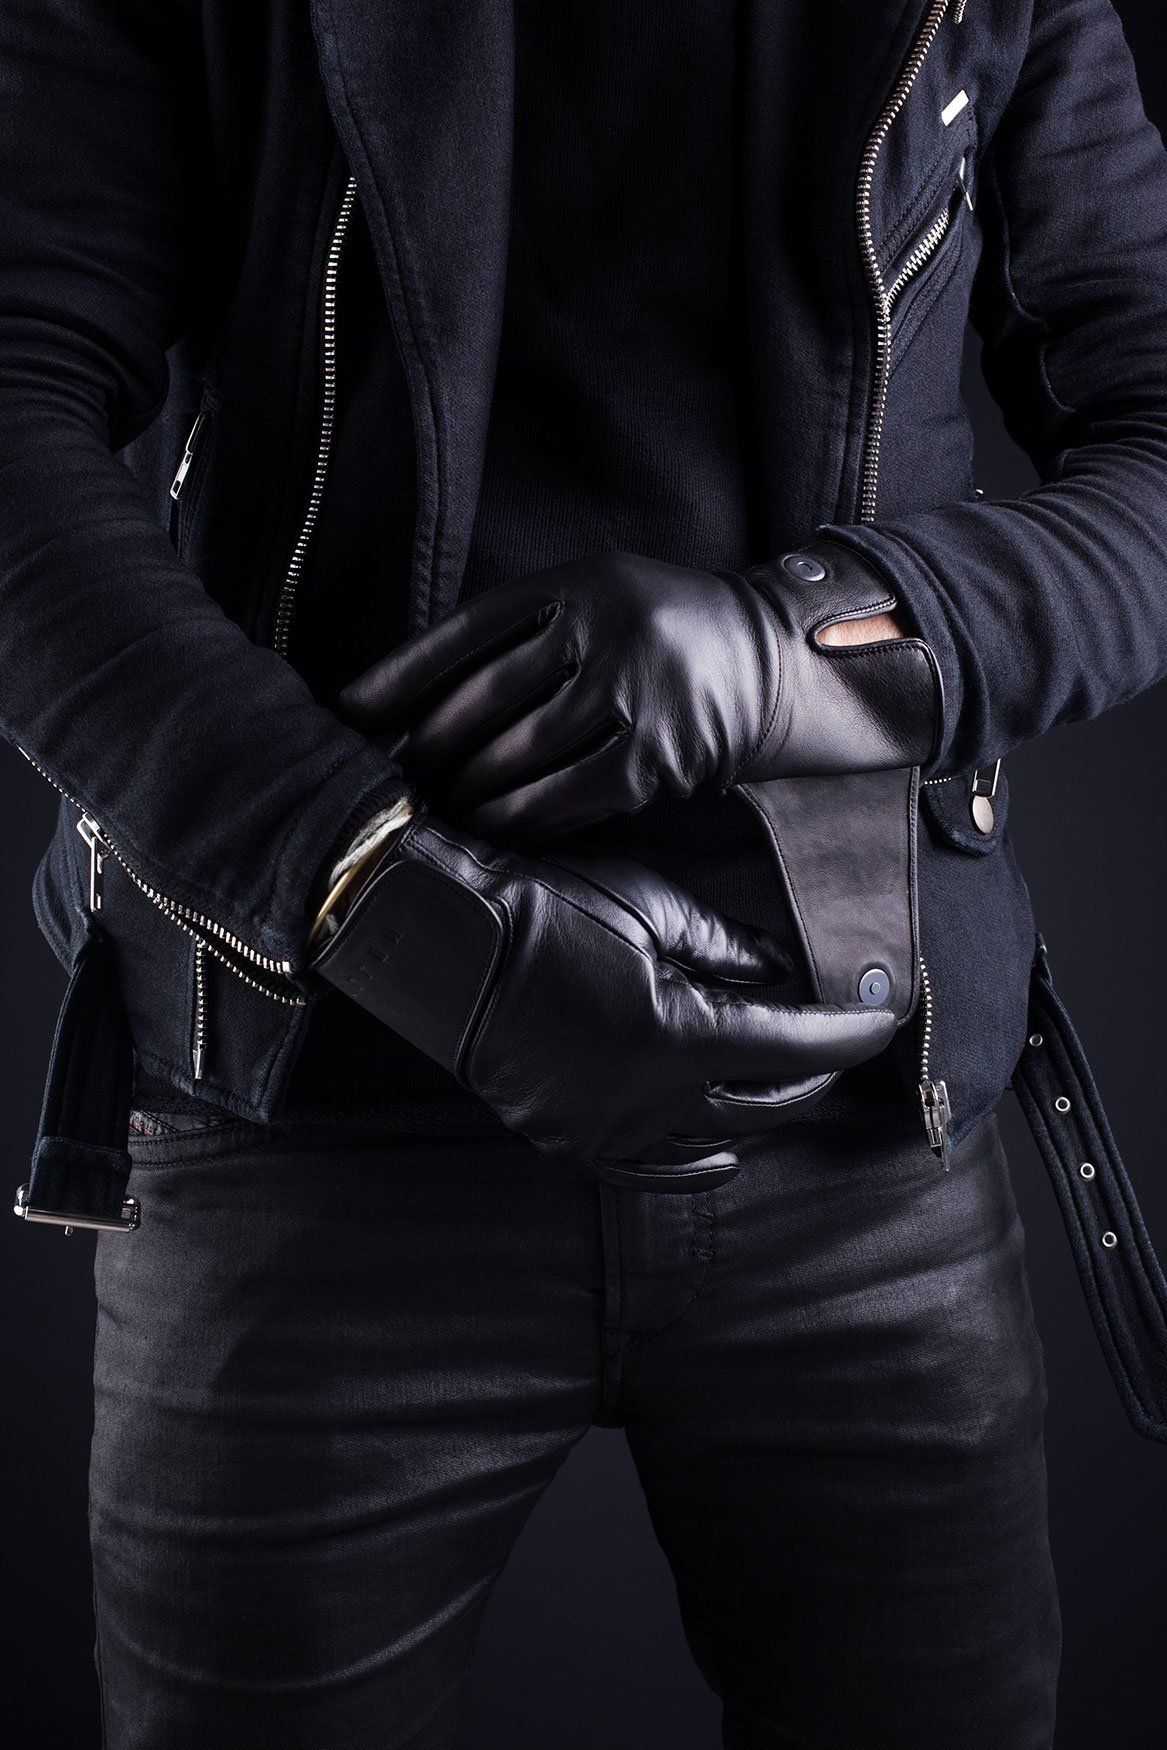 Vw leather driving gloves - Fancy Leather Touchscreen Gloves